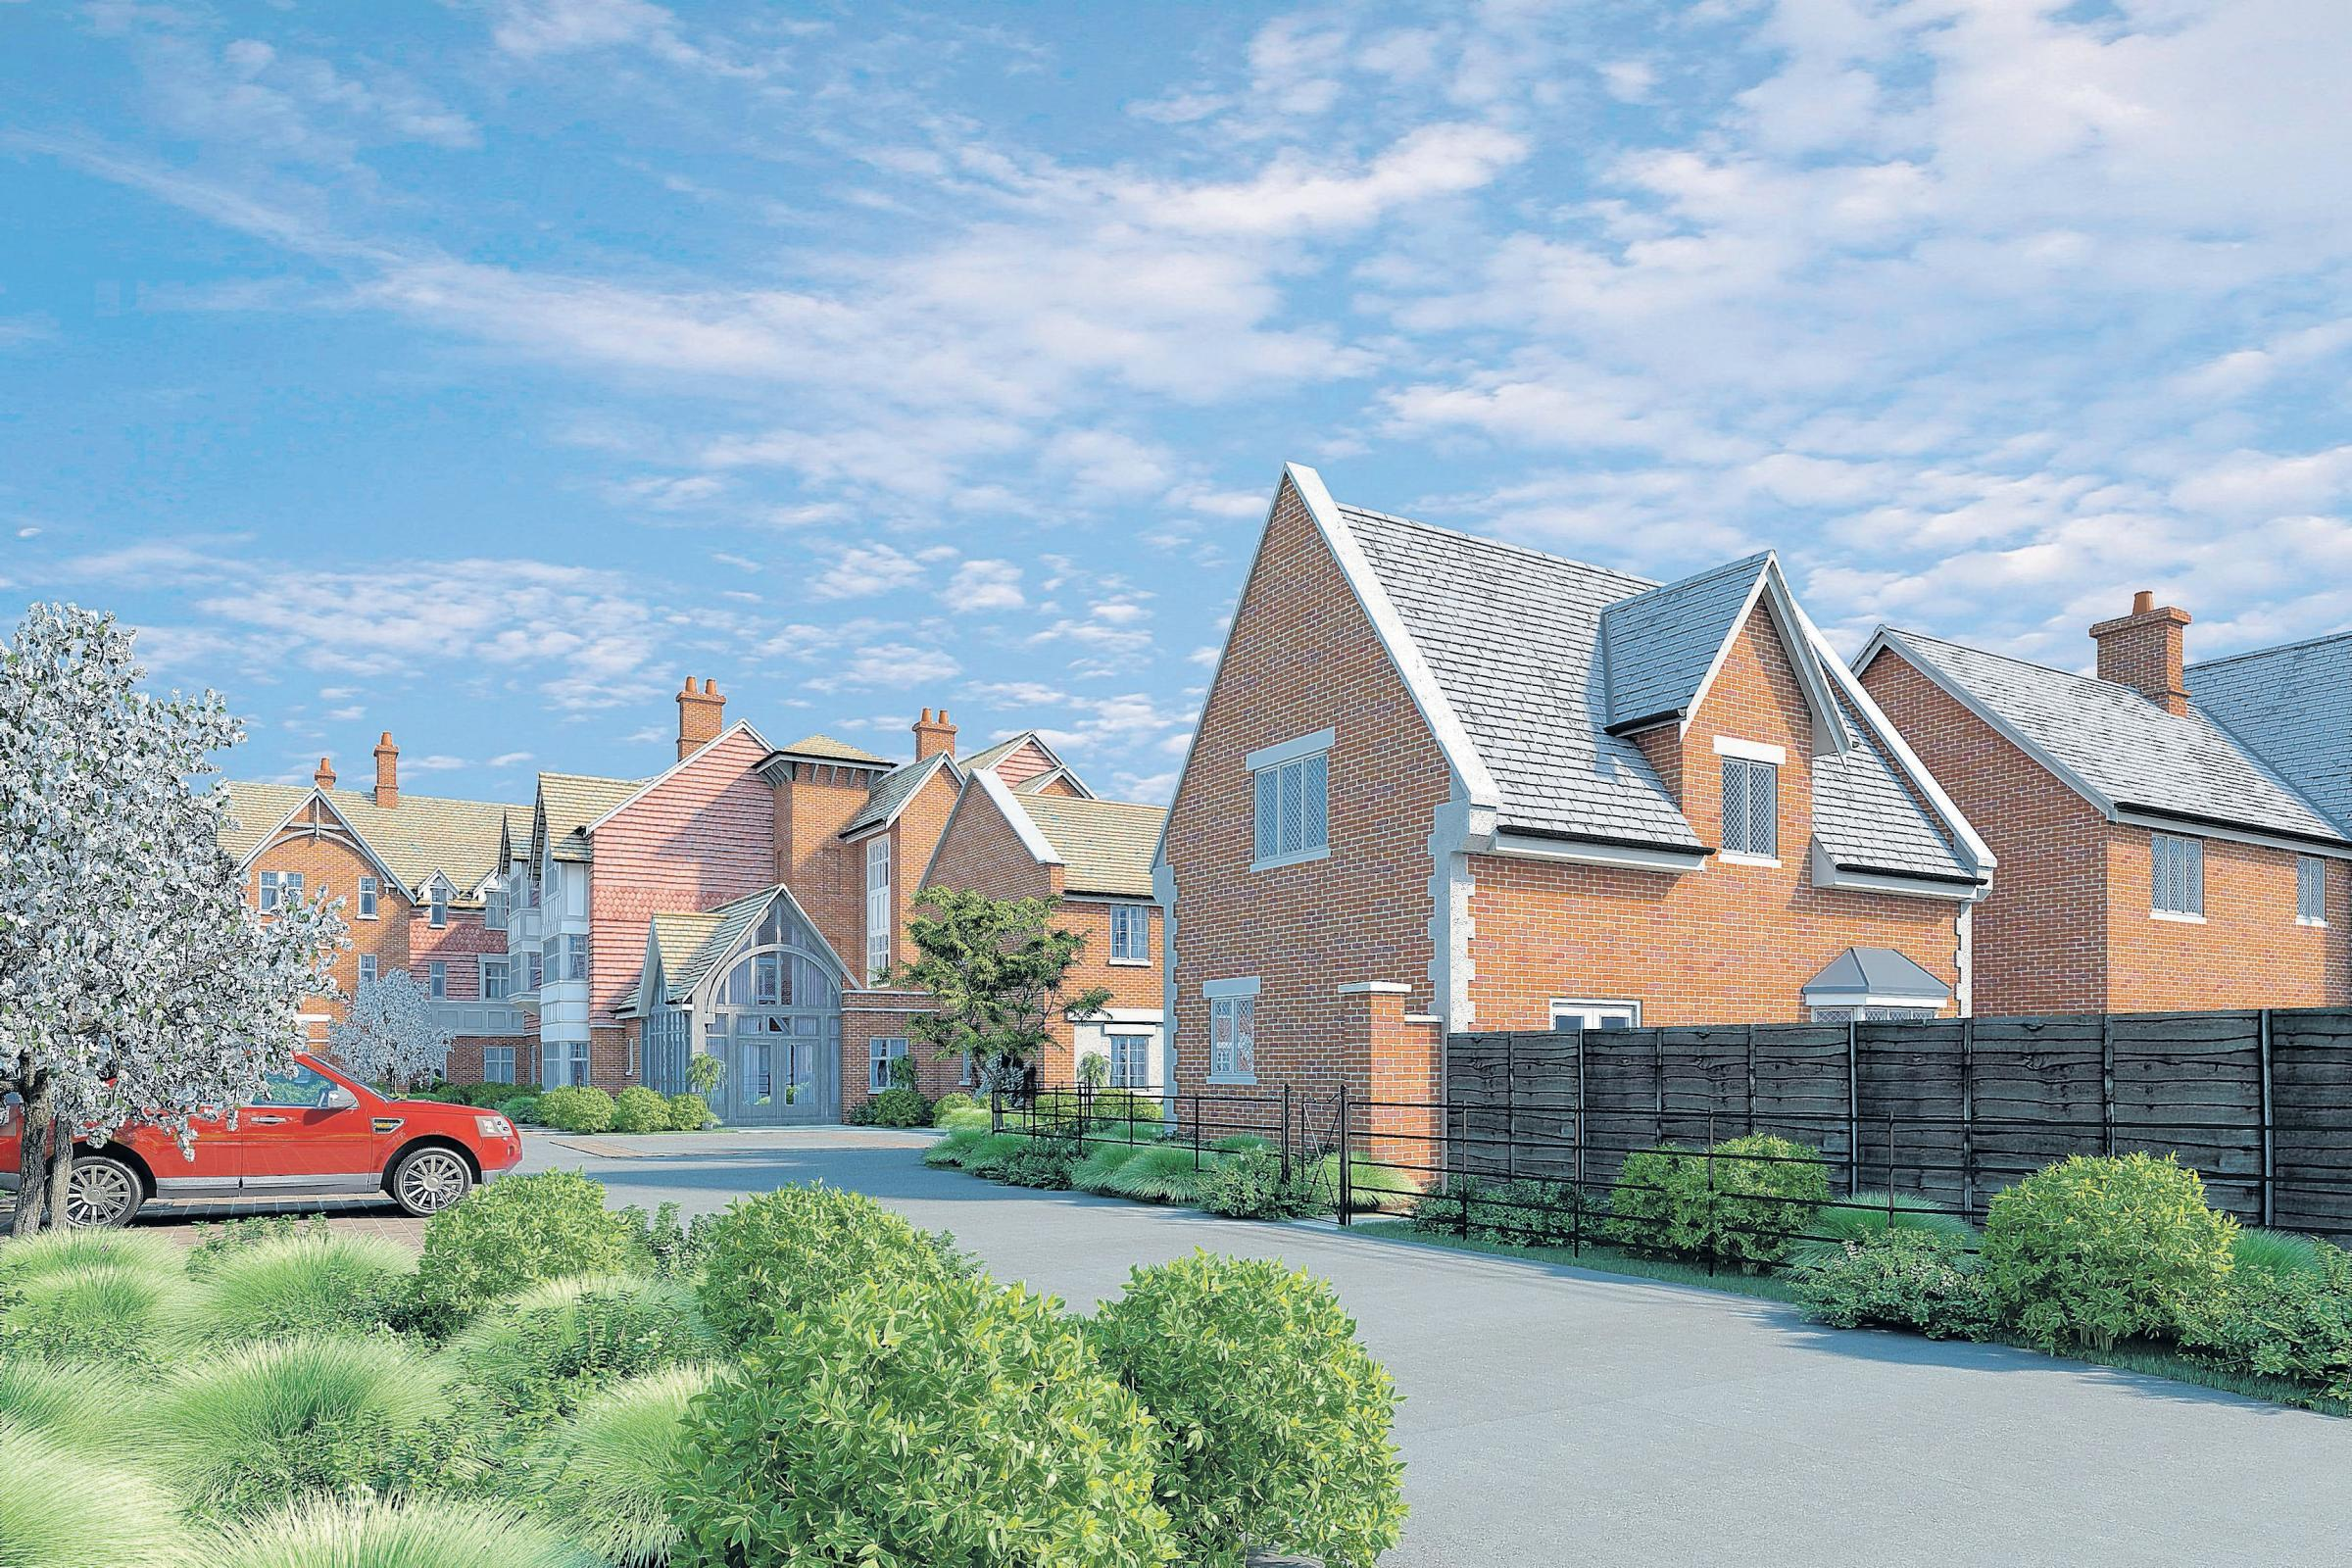 An artist's impression of the proposed McCarthy & Stone development